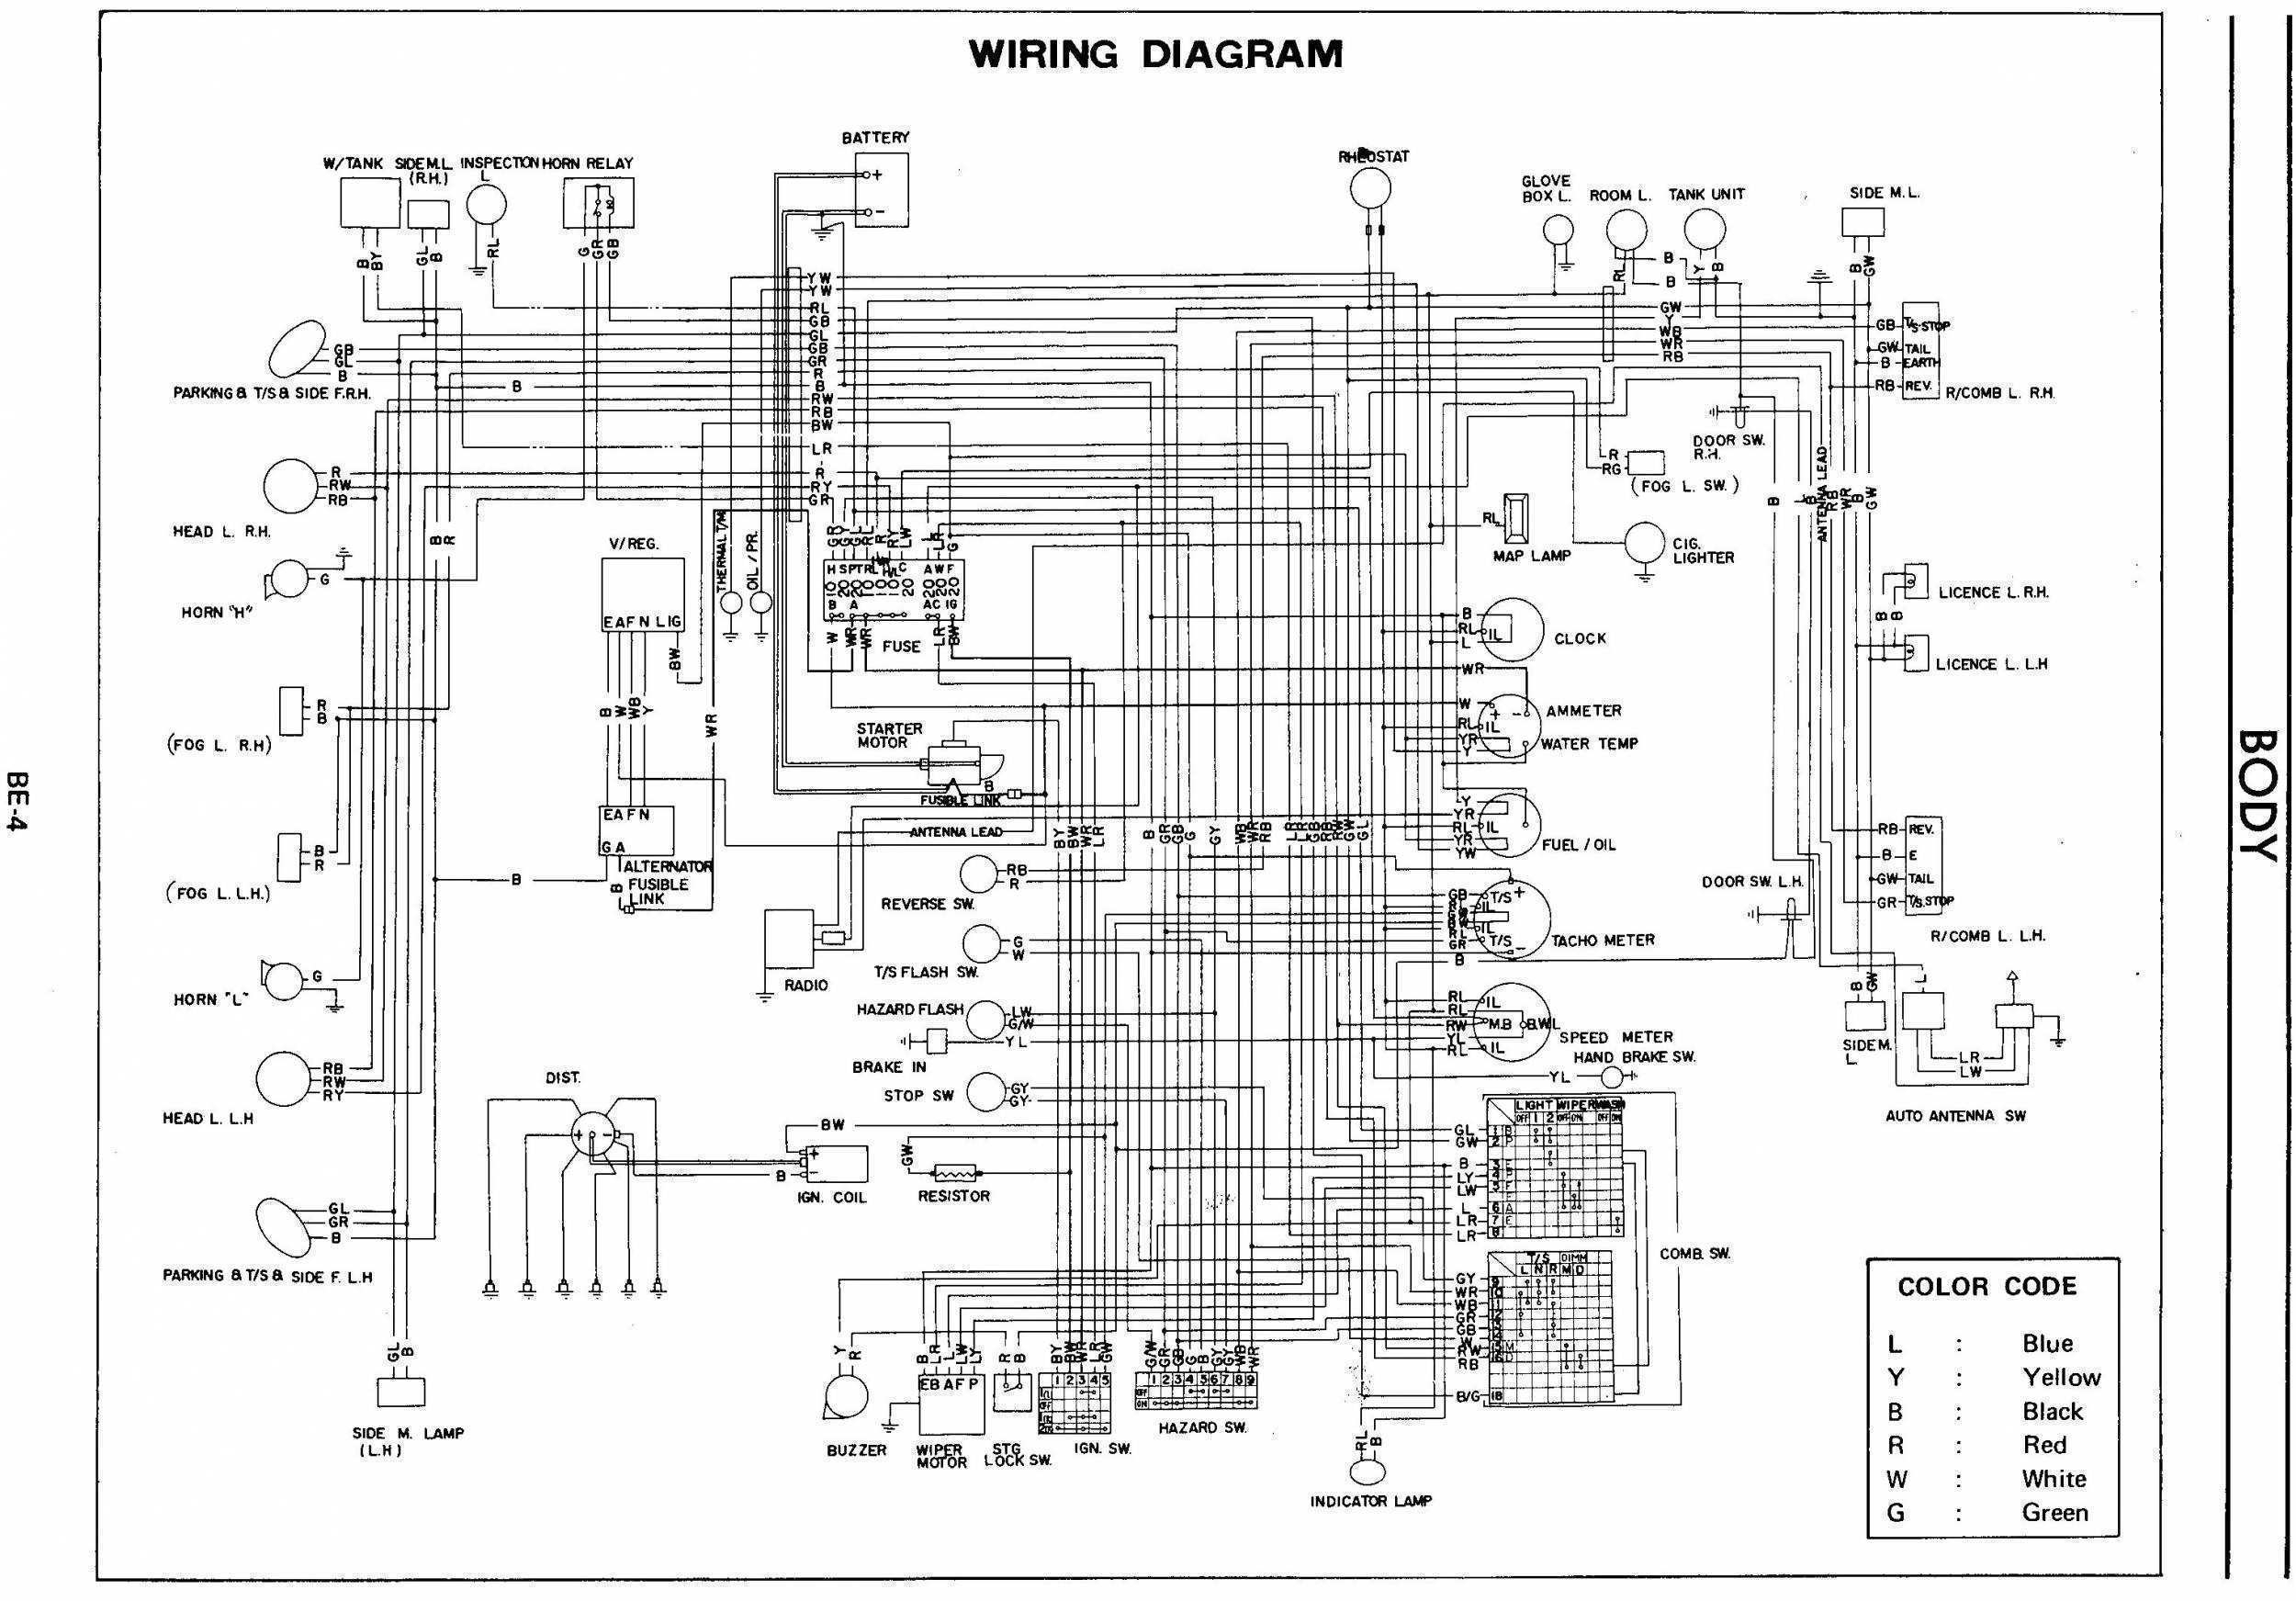 Diagram Mercedes Benz Radio Wiring Diagrams Full Version Hd Quality Wiring Diagrams Hrtechupdate Olth Guild Fr